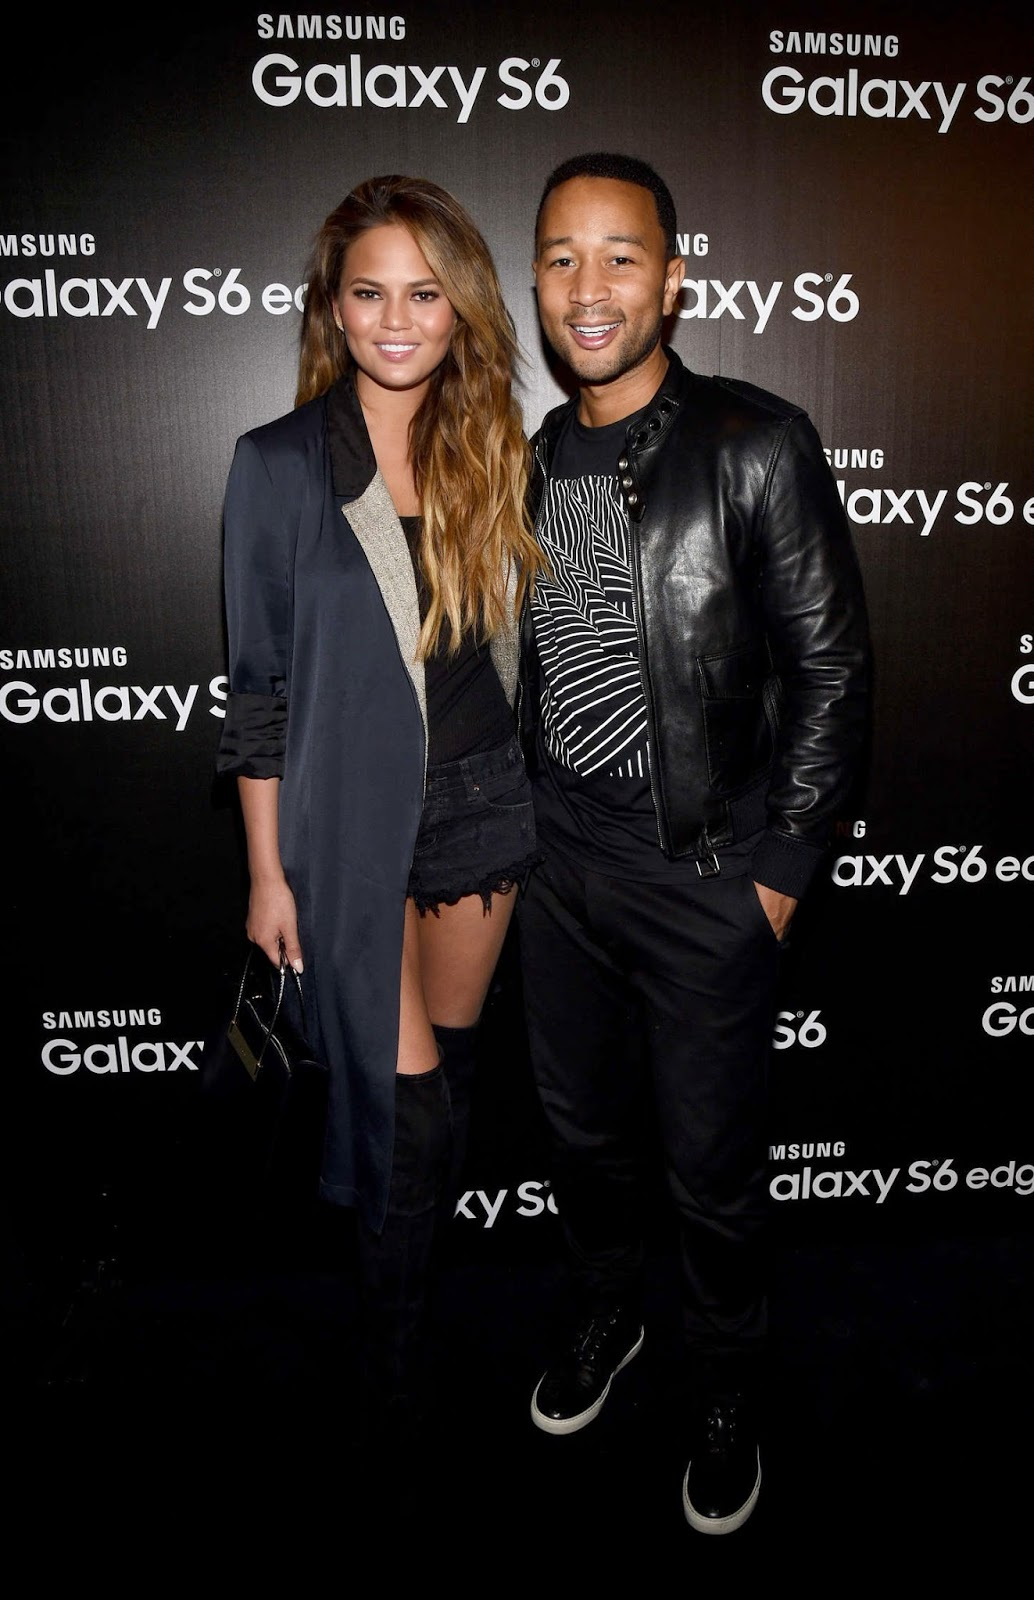 Chrissy Teigen shows off legs in Daisy Dukes at the Samsung Studio Launch in LA